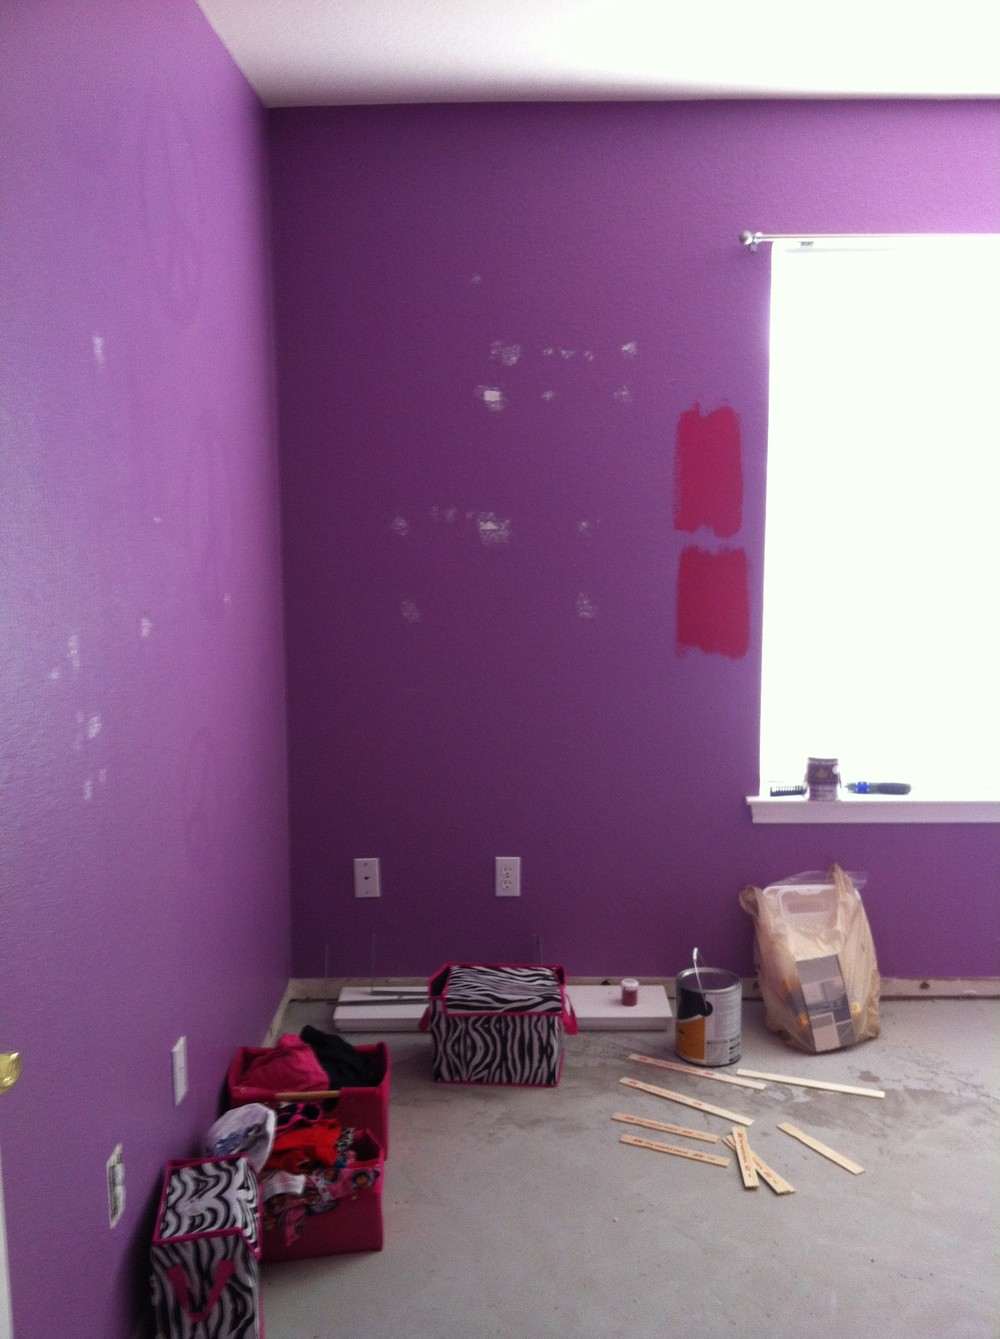 Before: The purple room